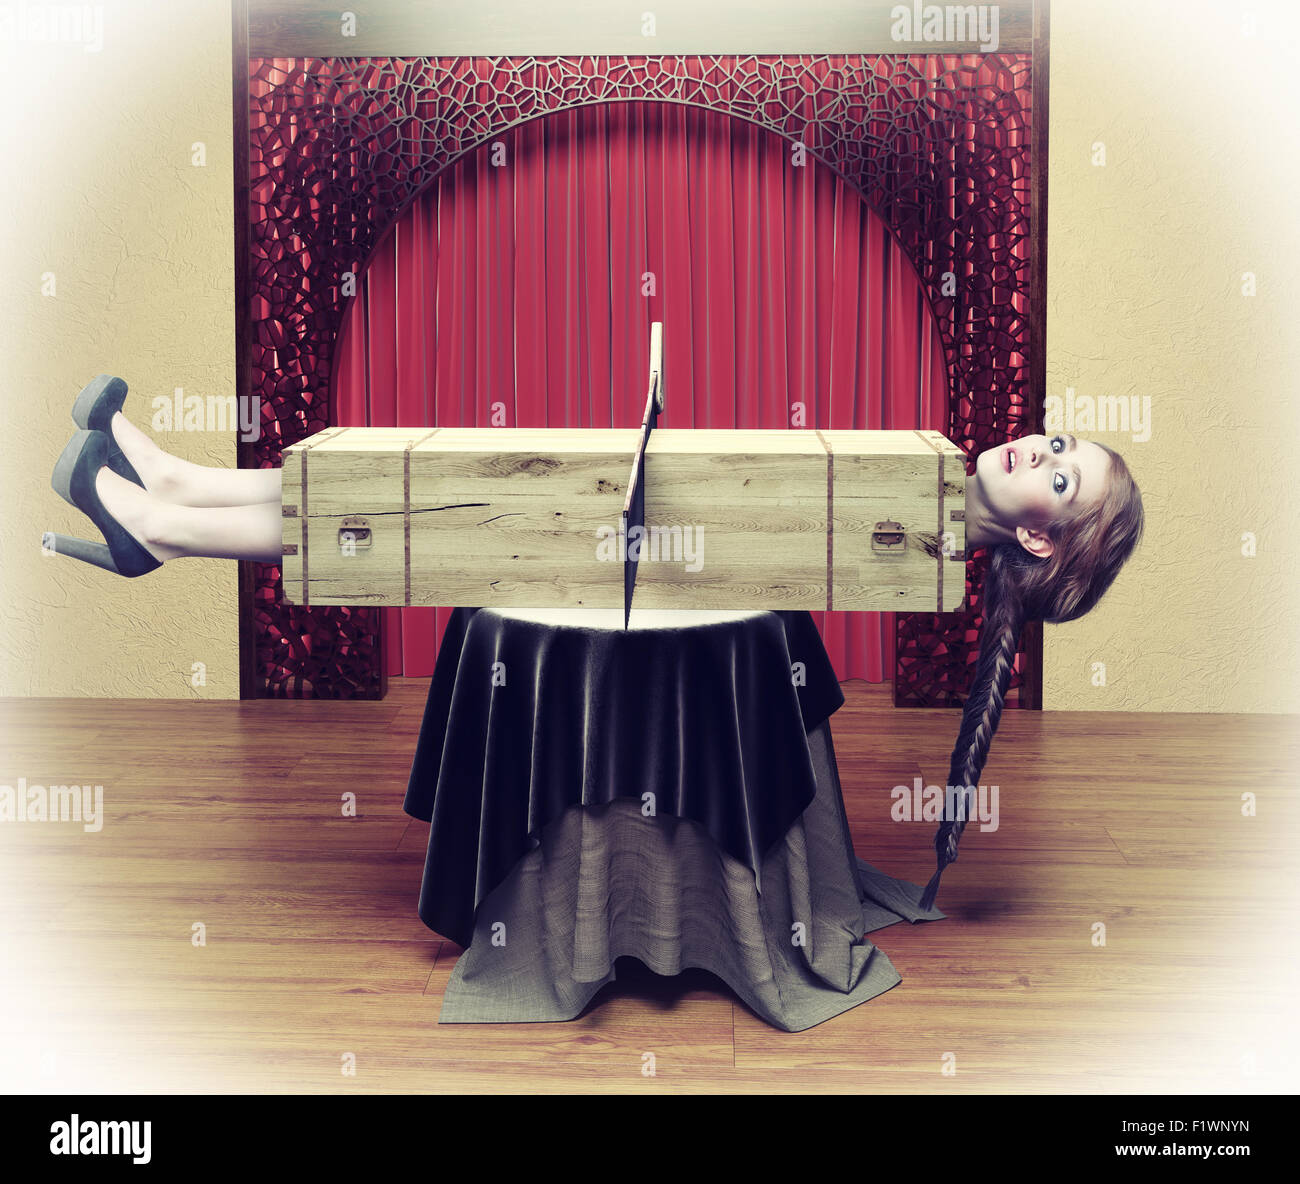 Magician sawing a woman with a saw.Photo combination concept - Stock Image